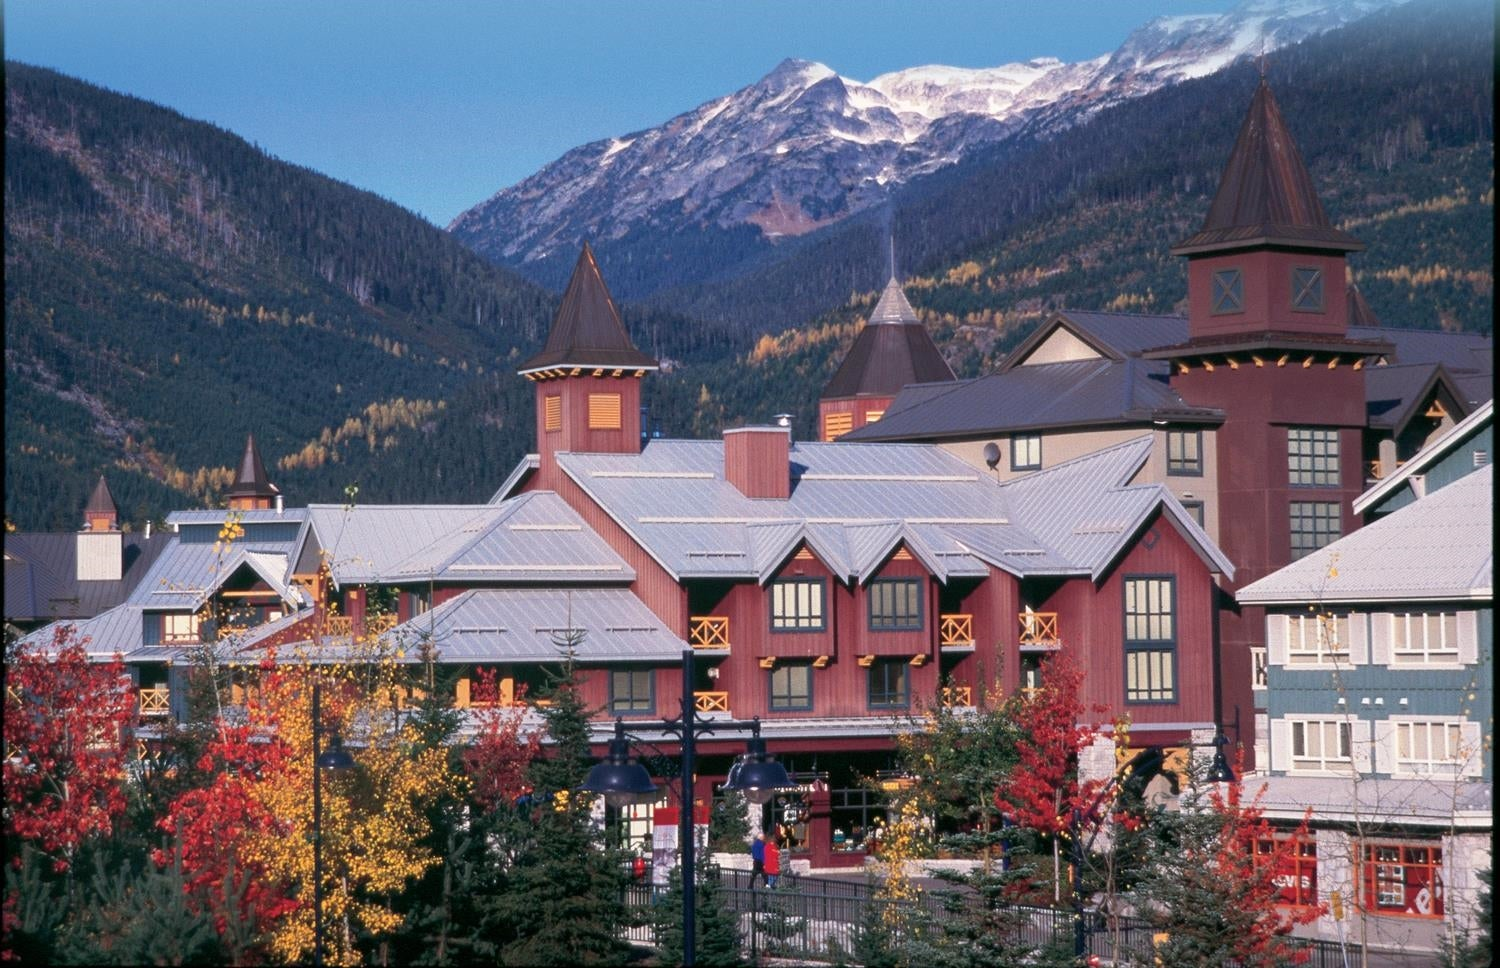 1360 4308 MAIN STREET - Whistler Village Apartment/Condo for sale, 1 Bedroom (R2625059)